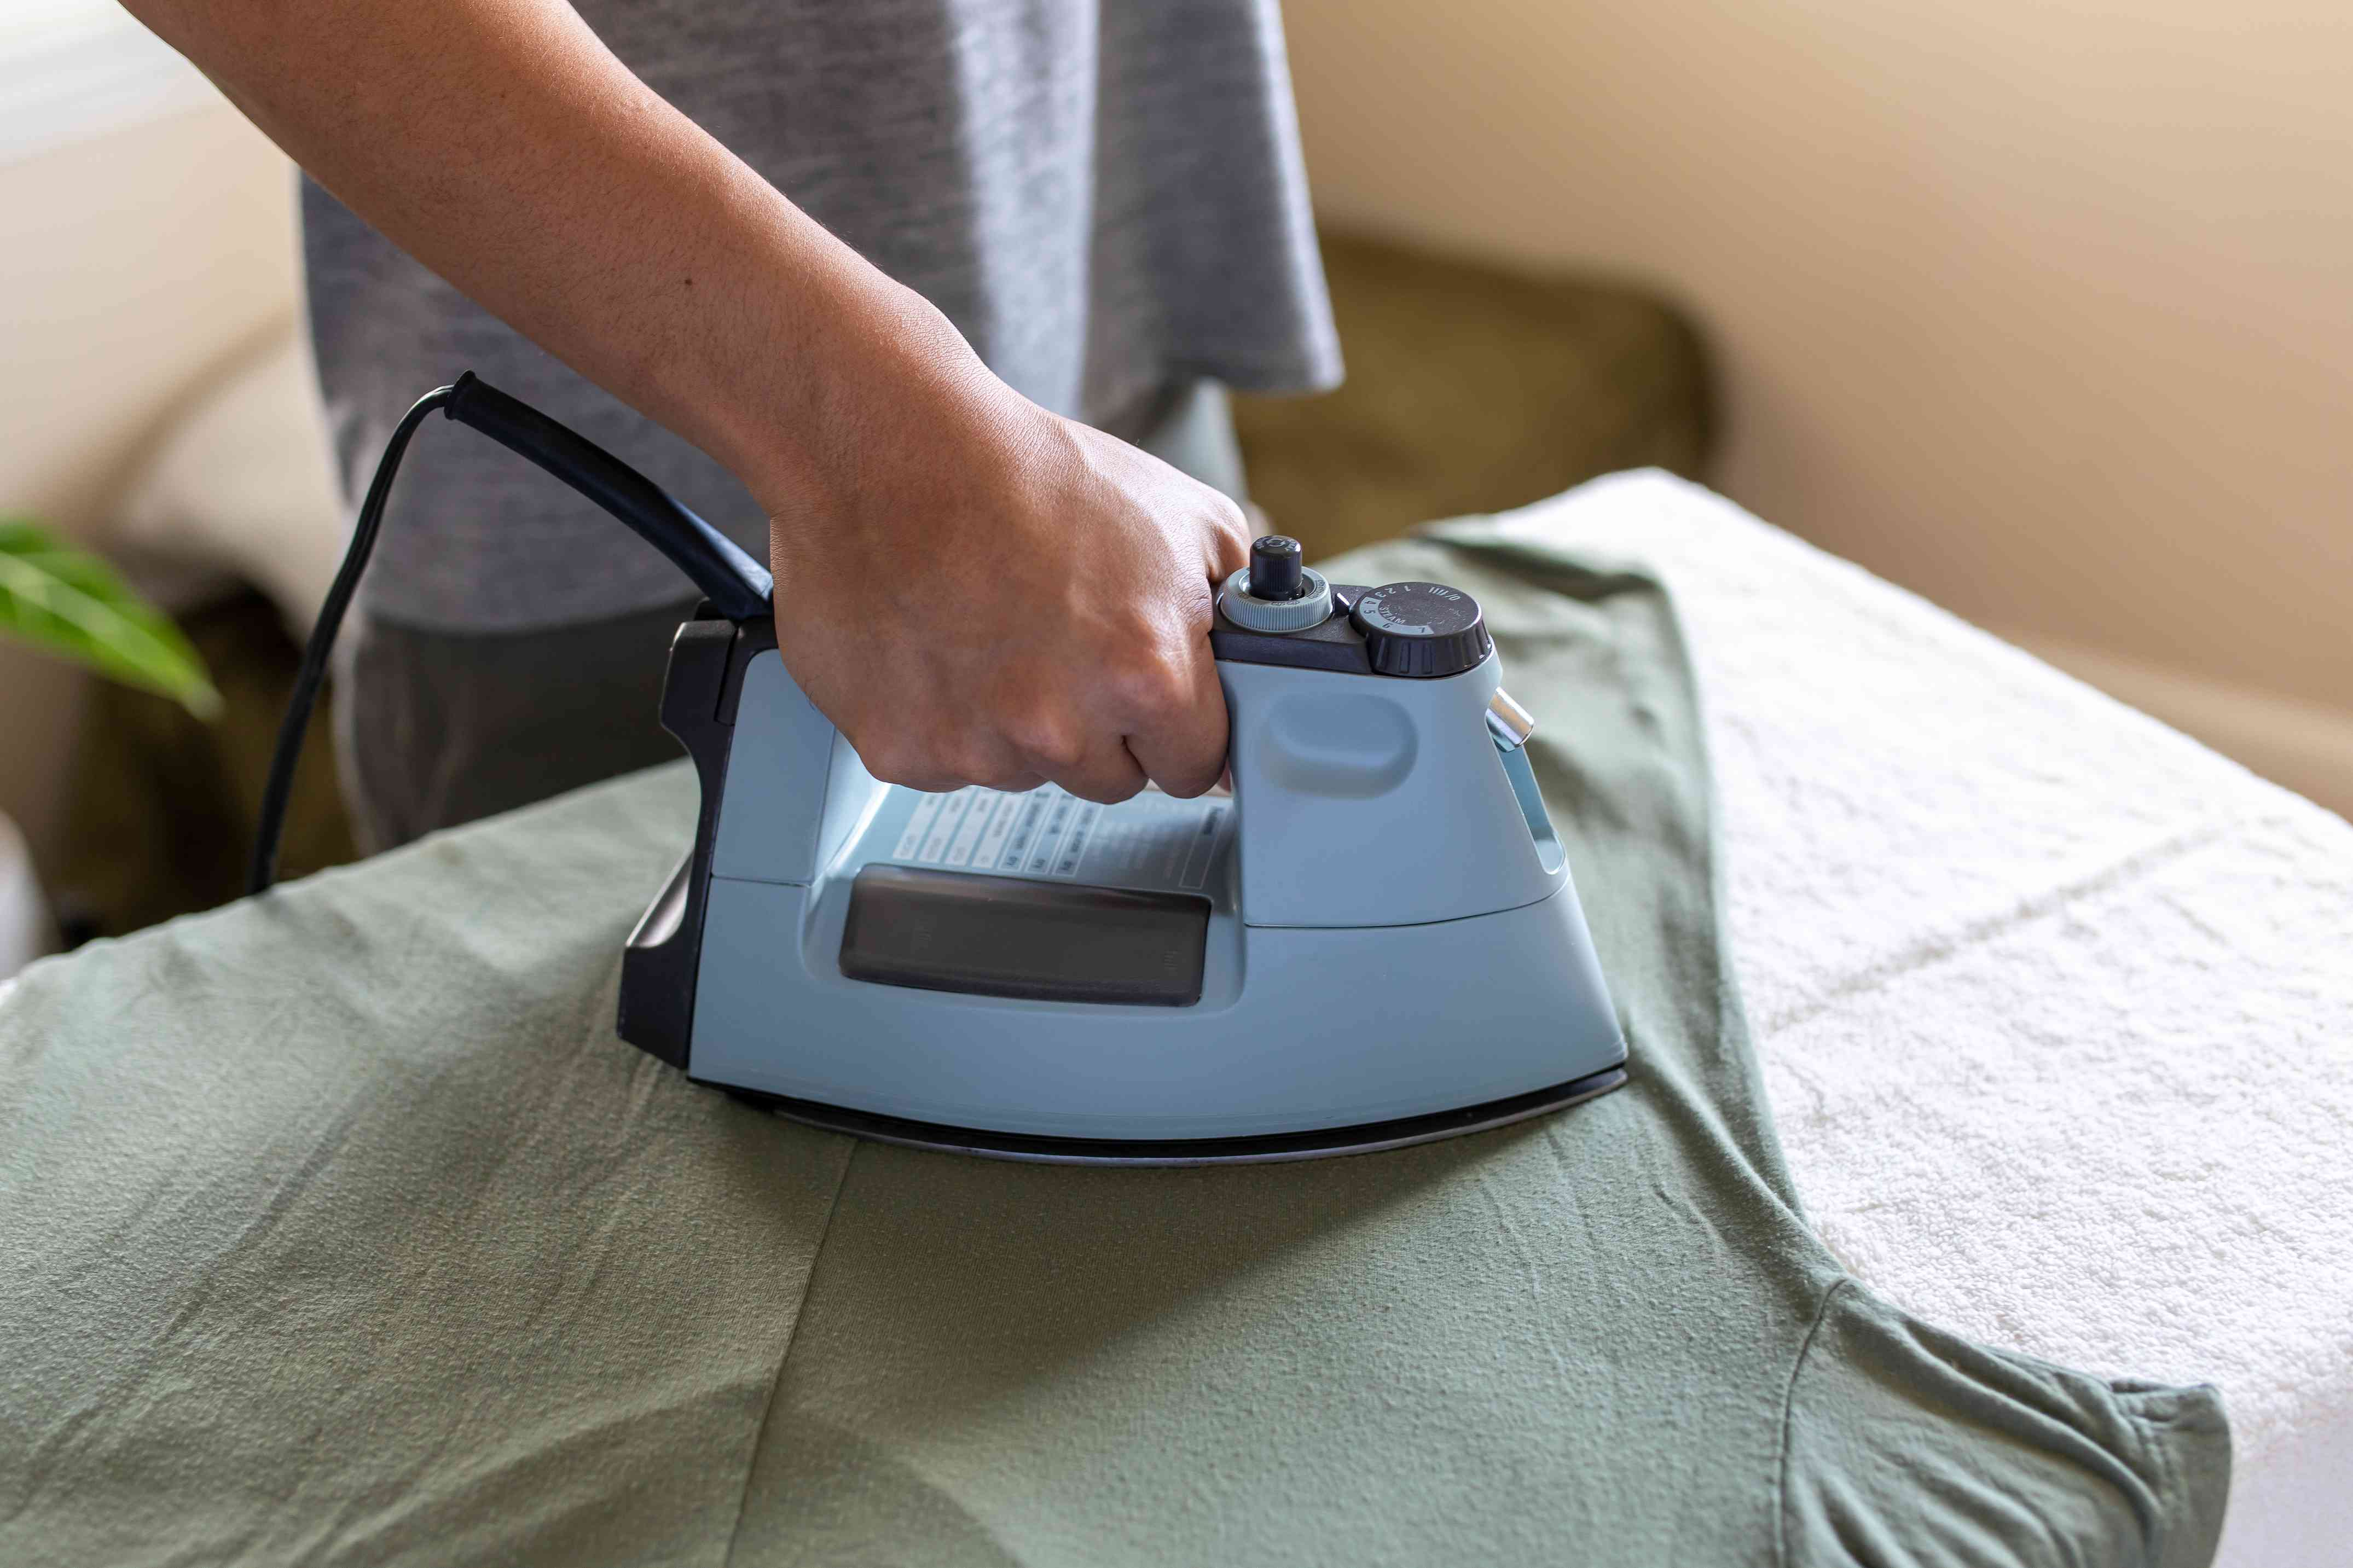 person ironing over a white towel